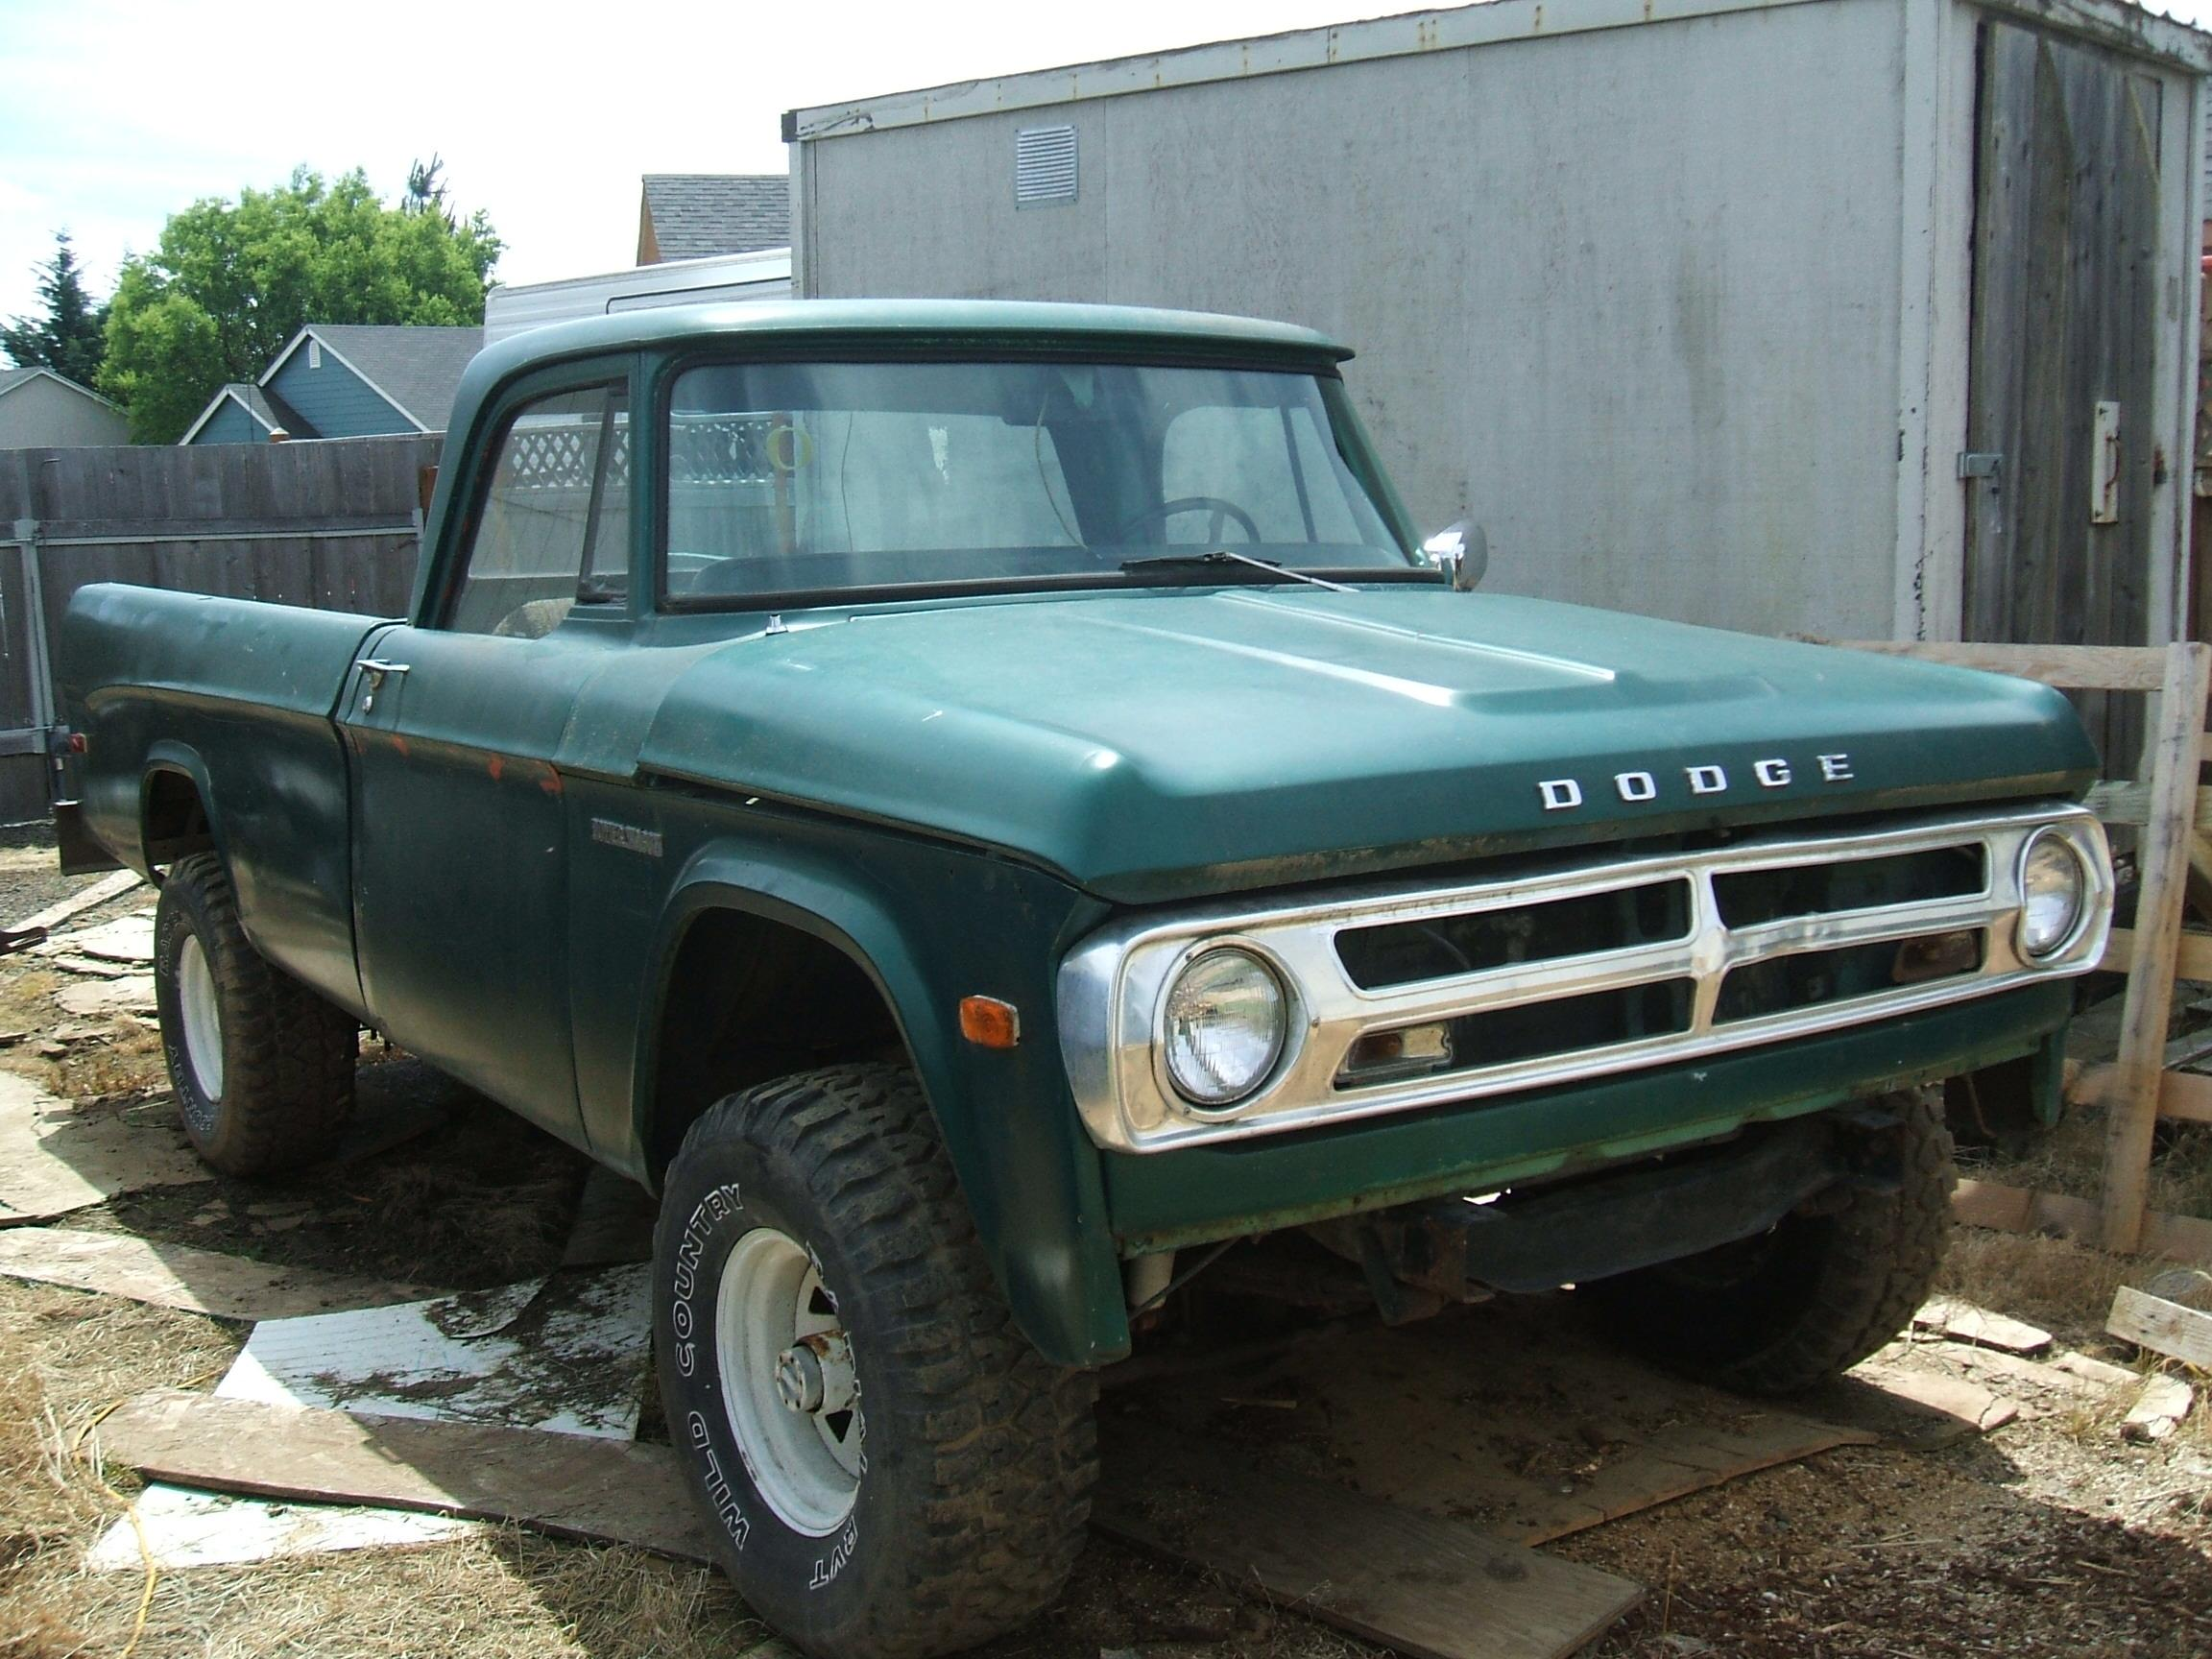 88ranger23turbo 1971 Dodge Power Wagon 14584282